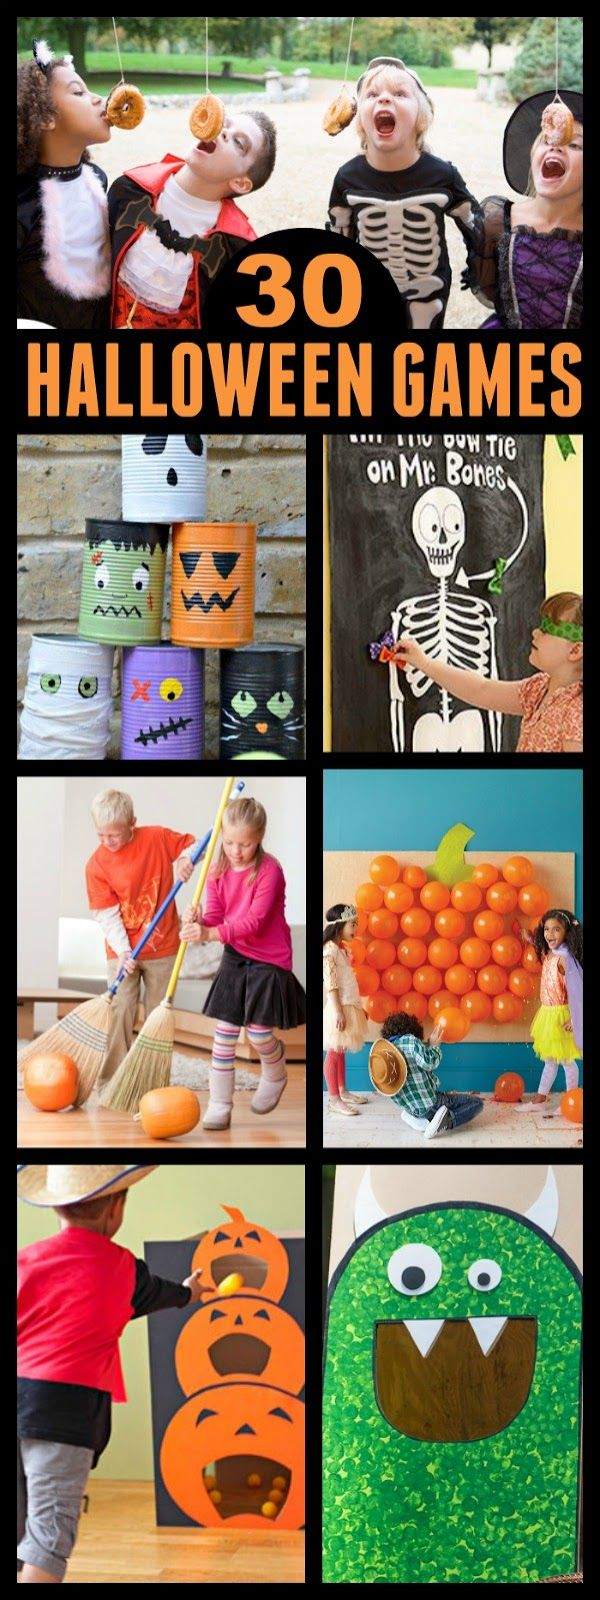 30 halloween game ideas for kids these are so cool pin for later - Game Ideas For Halloween Party